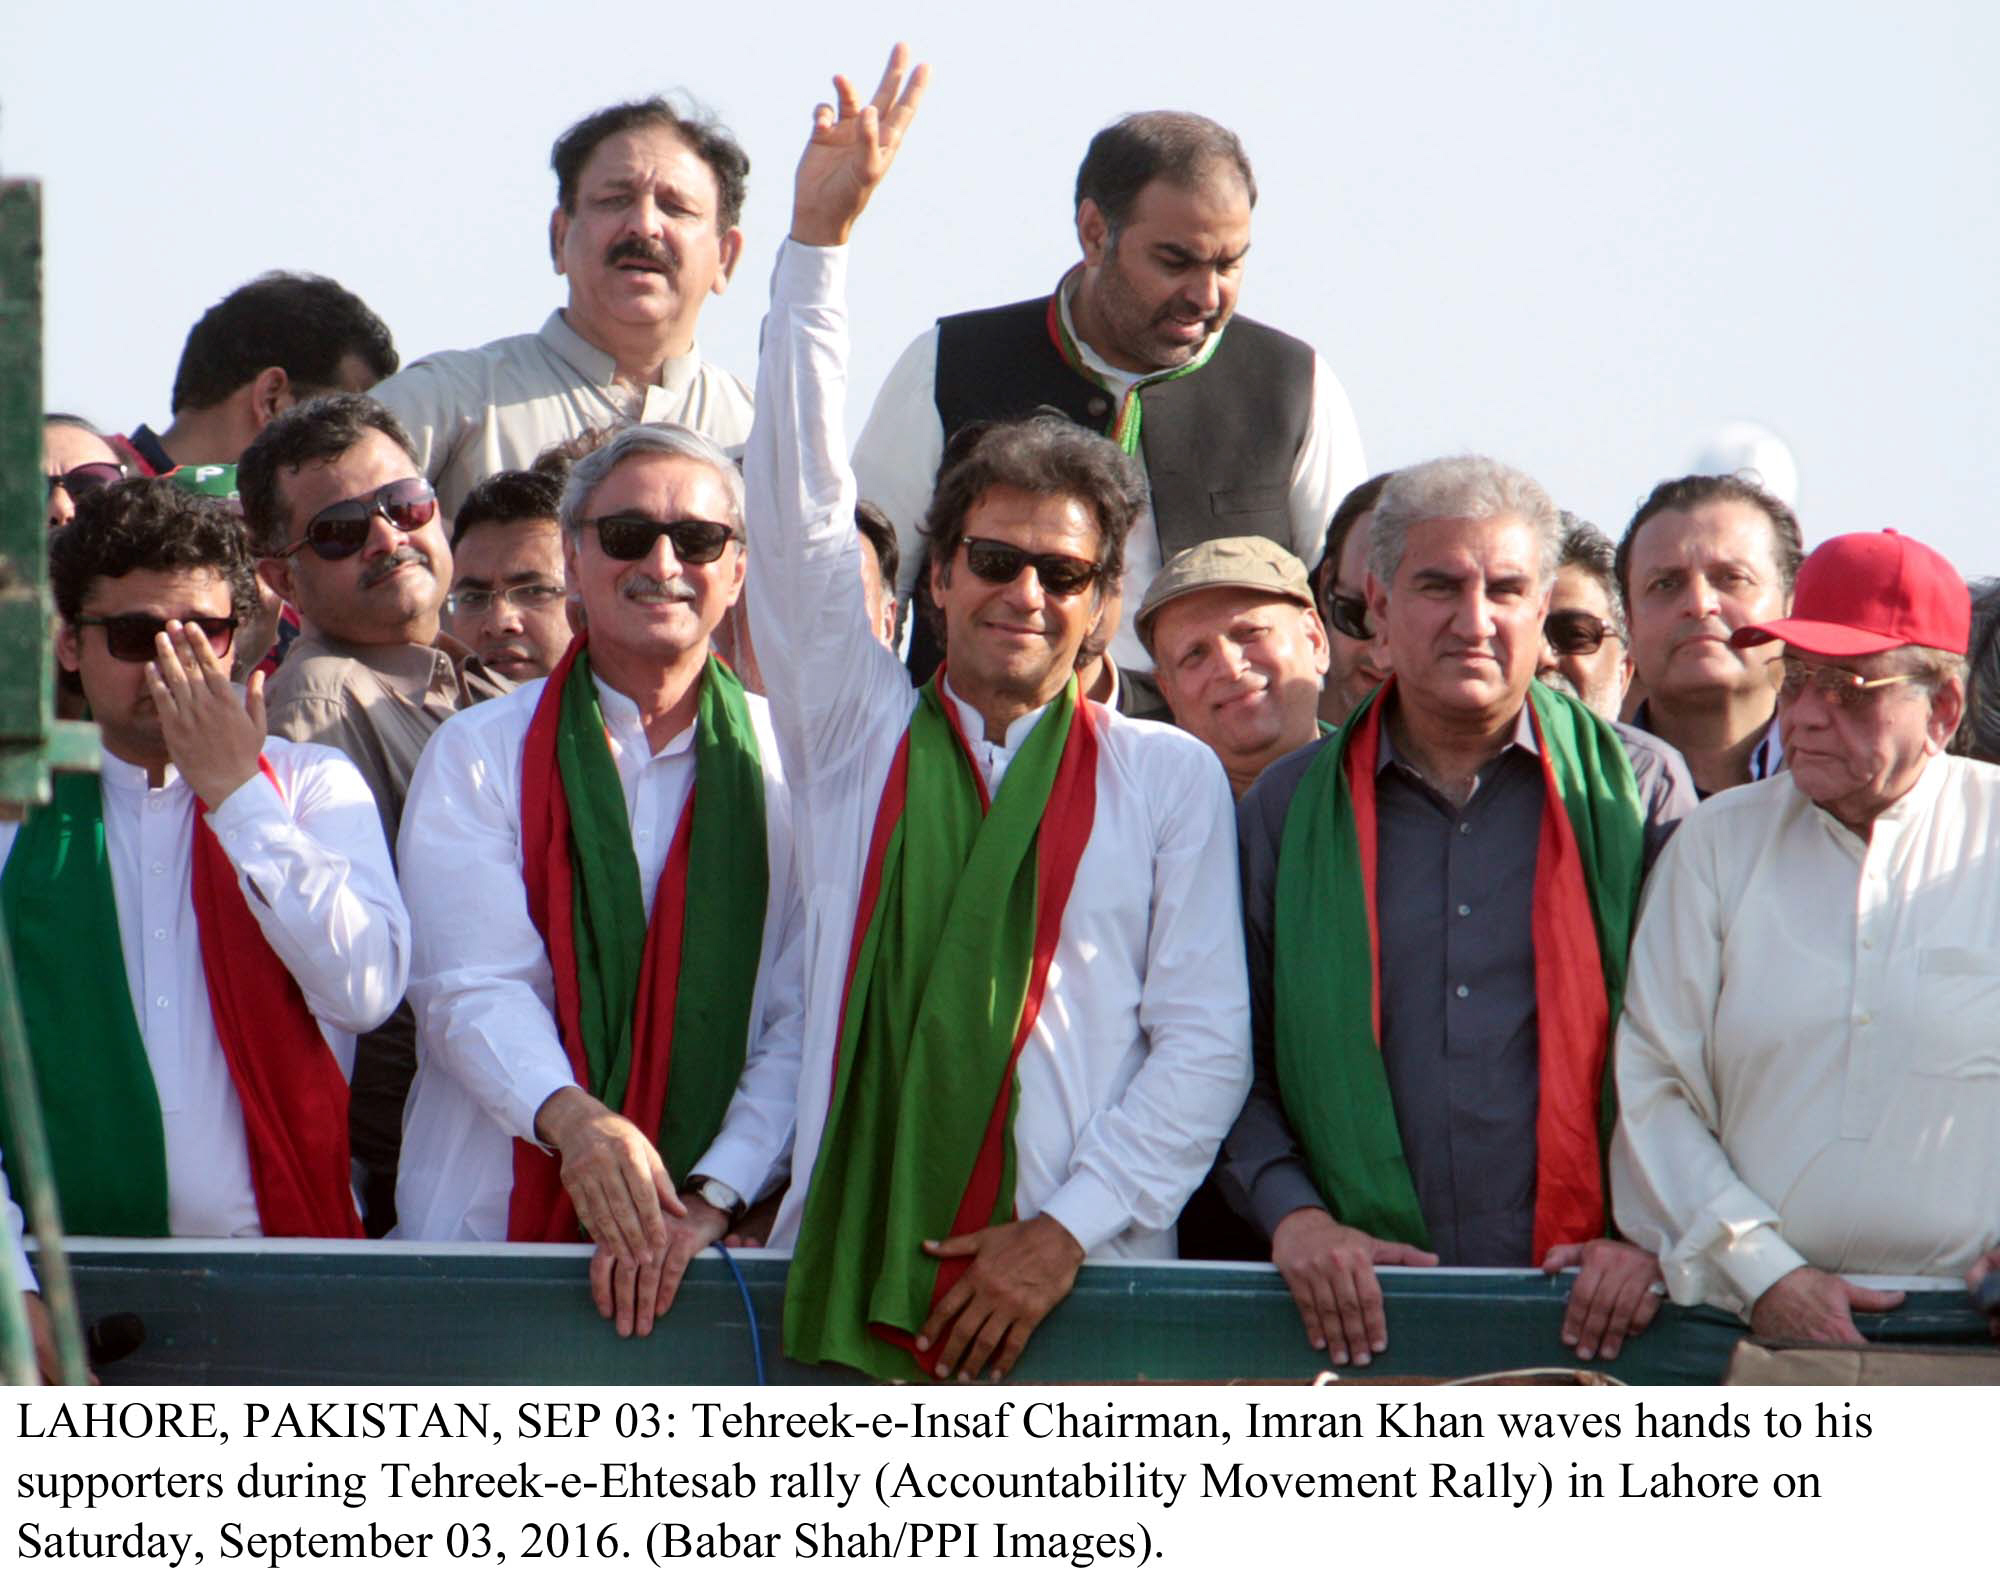 staying put pti strikes a responsive chord